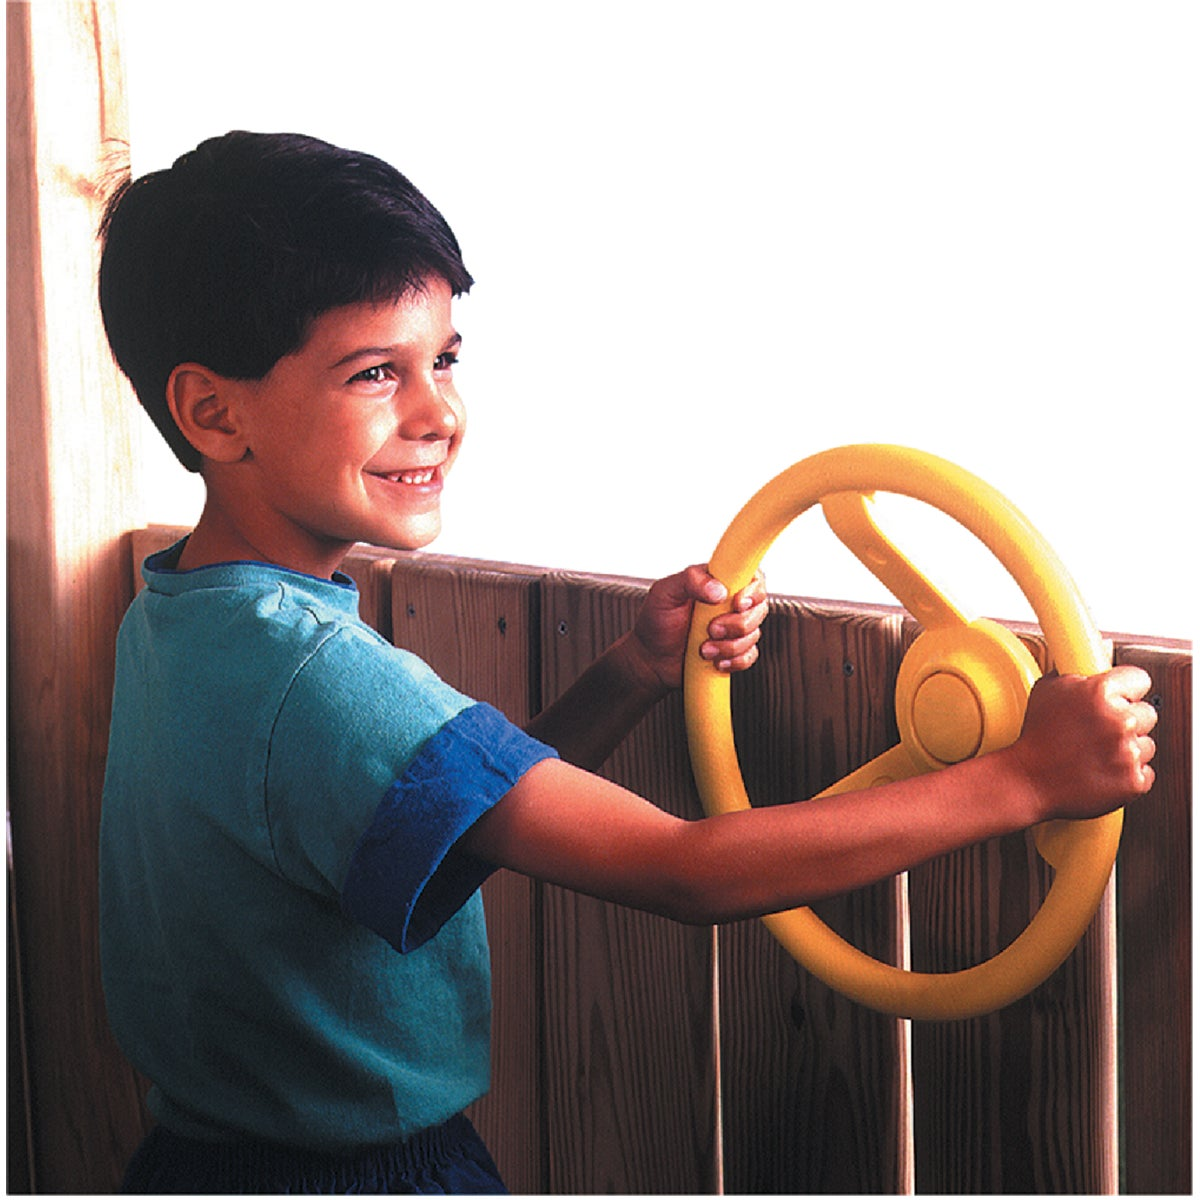 YELLOW STEERING WHEEL - NE4412 by Swing N Slide Corp